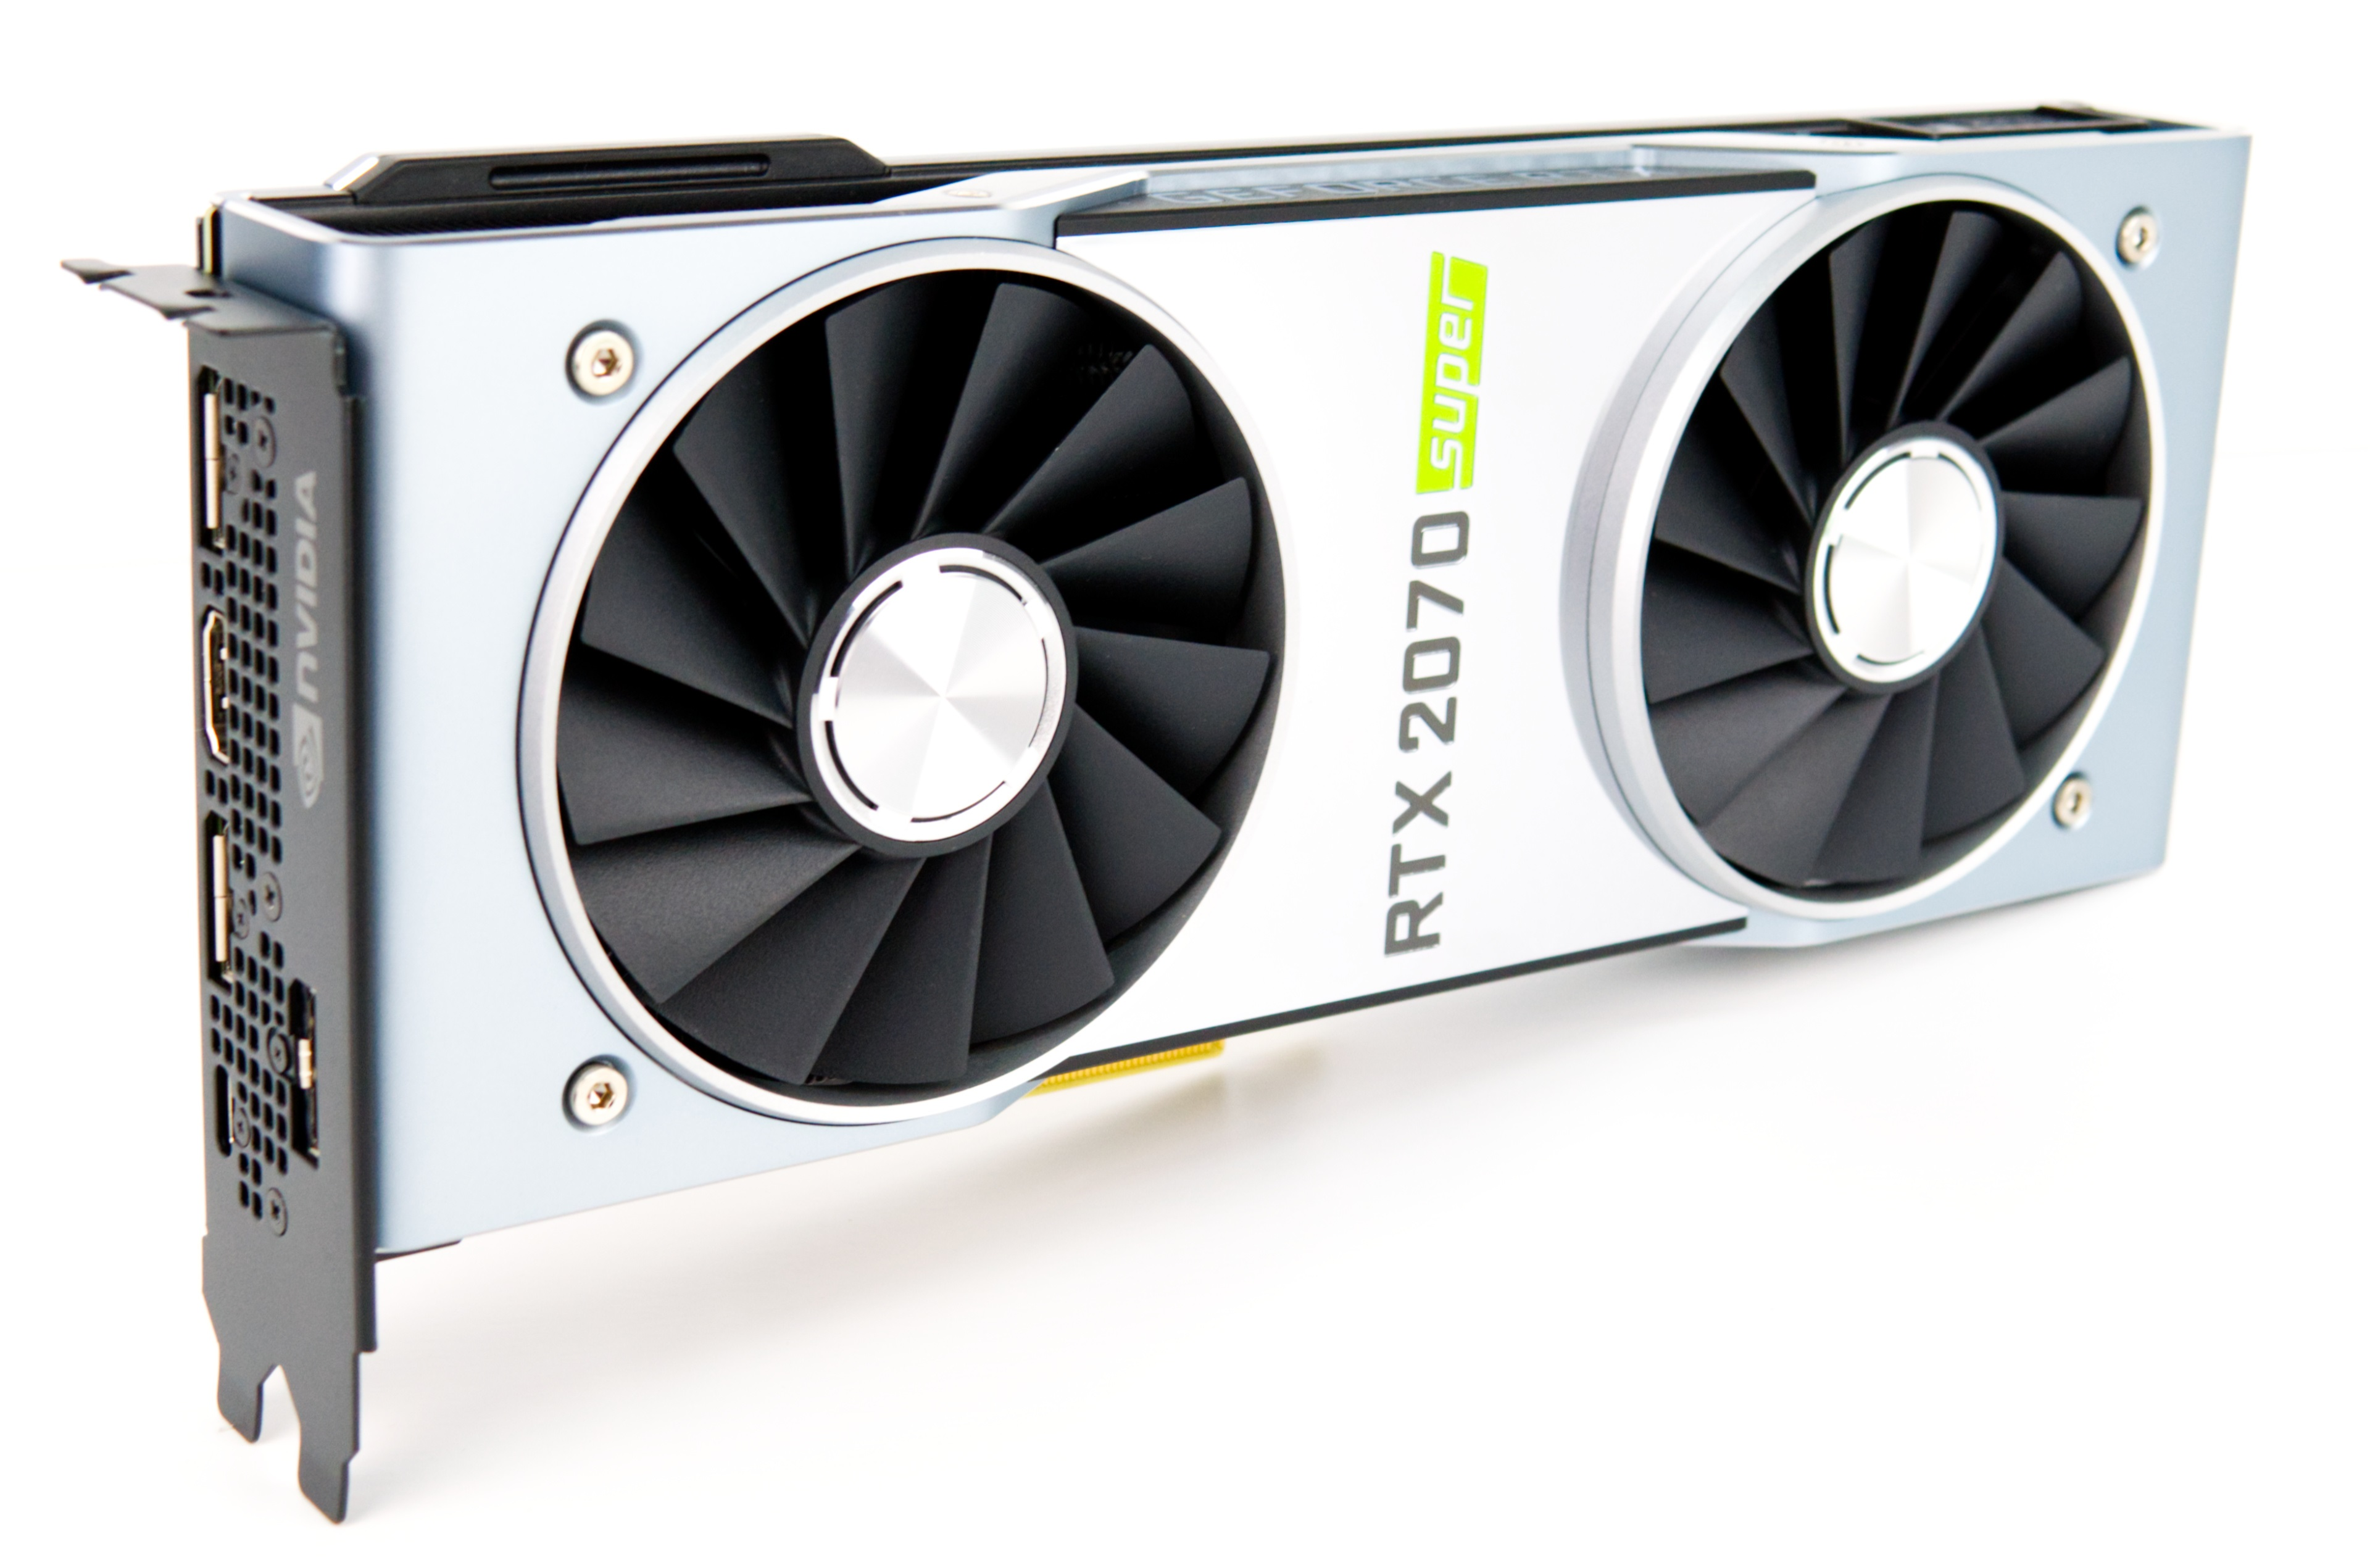 Test: NVIDIA GeForce RTX 2070 SUPER - Når nästan fram till GeForce RTX 2080